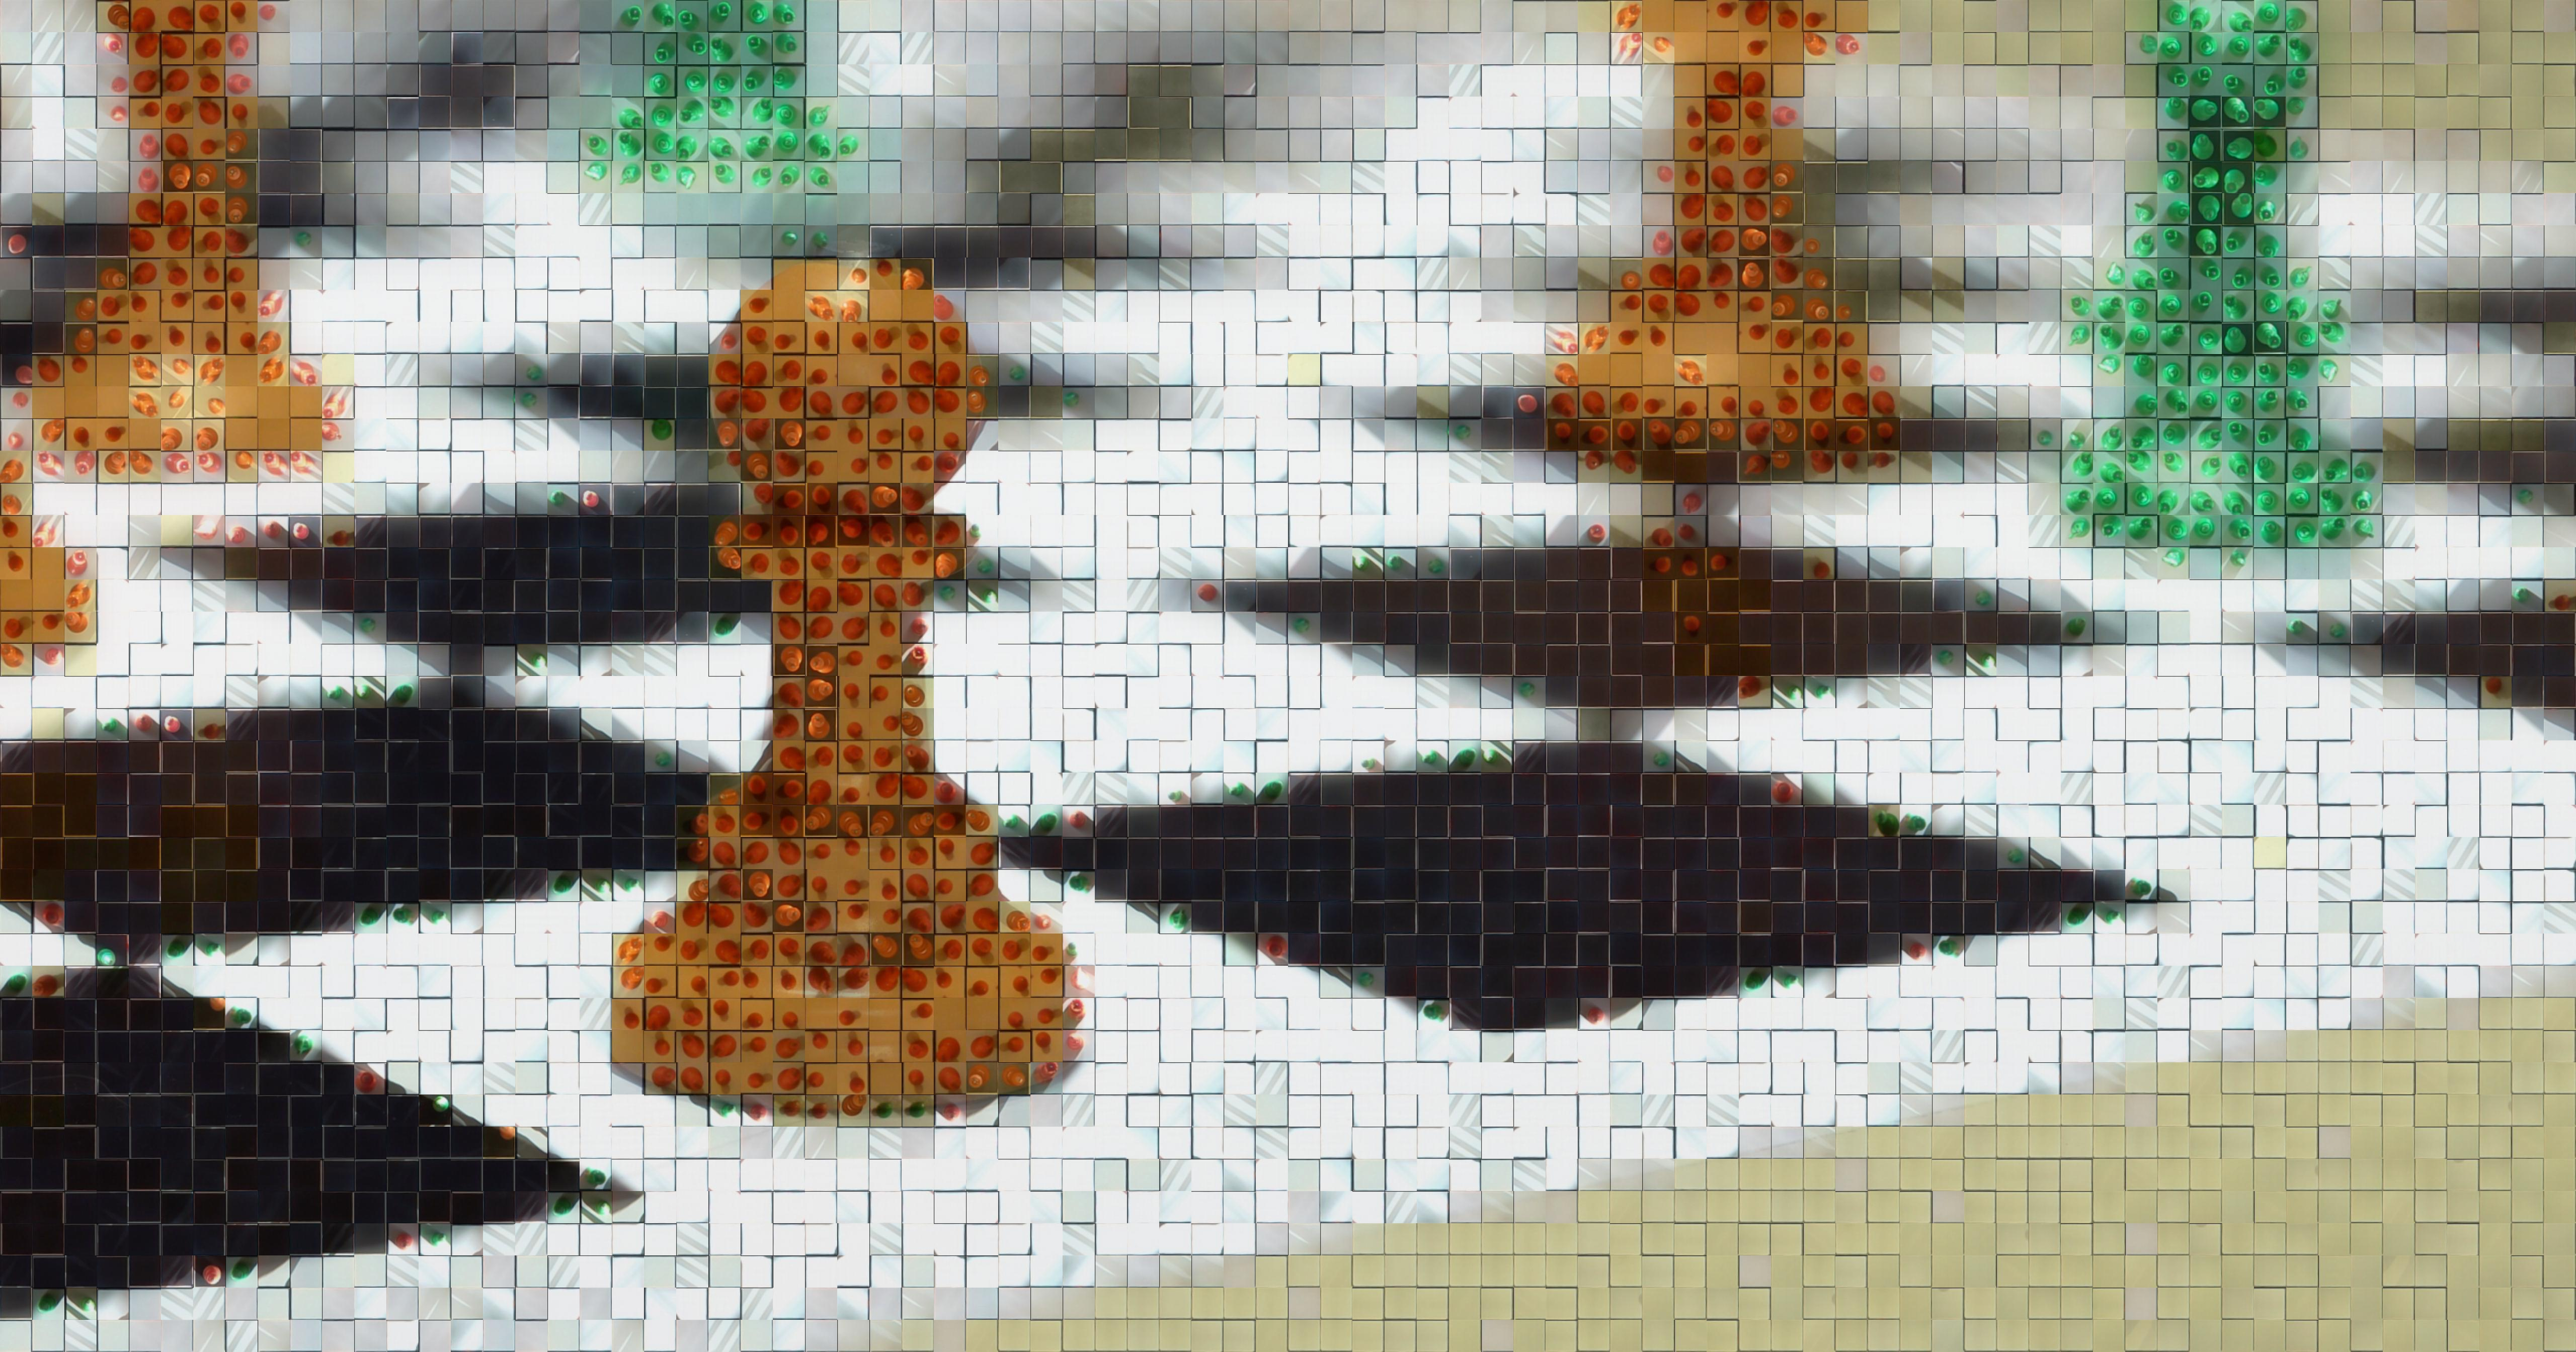 Abstract mosiac of chess pieces made out of images from the dataset.